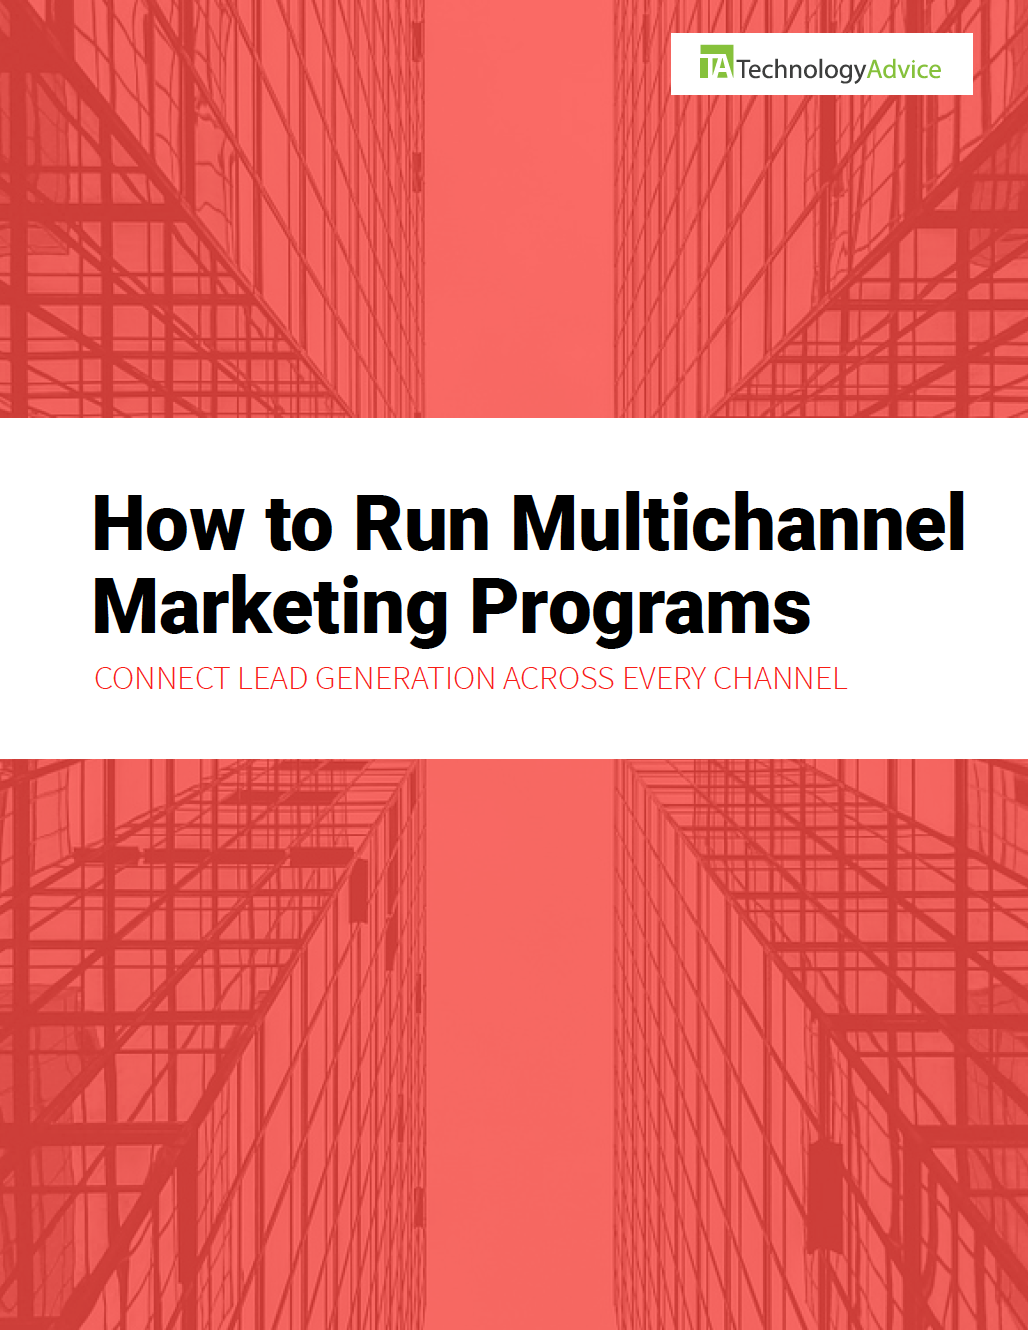 TechnologyAdvice Research Guide: The Multichannel Marketing Handbook